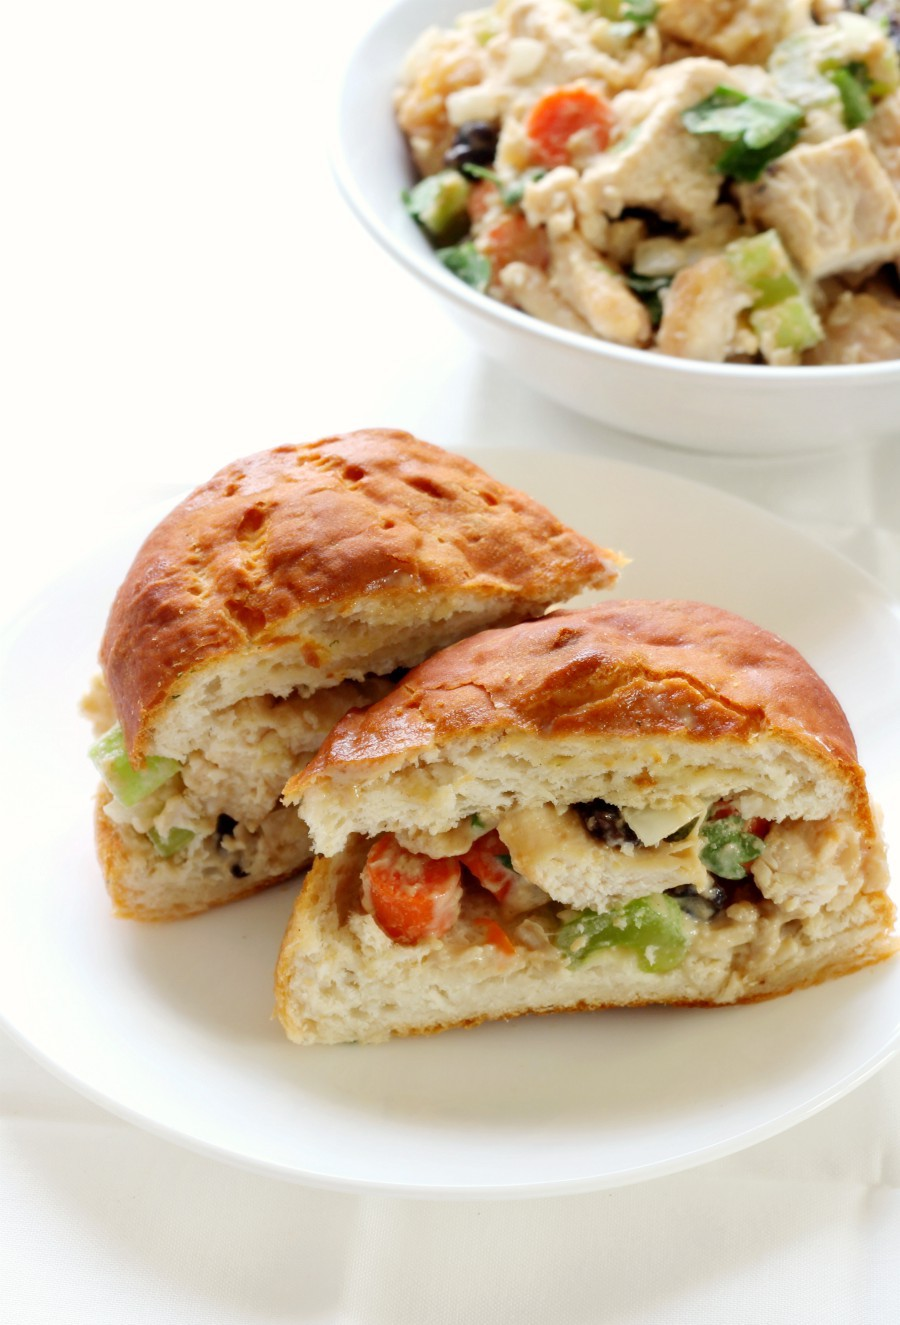 tahini-chicken-salad-sandwich-with-bowl